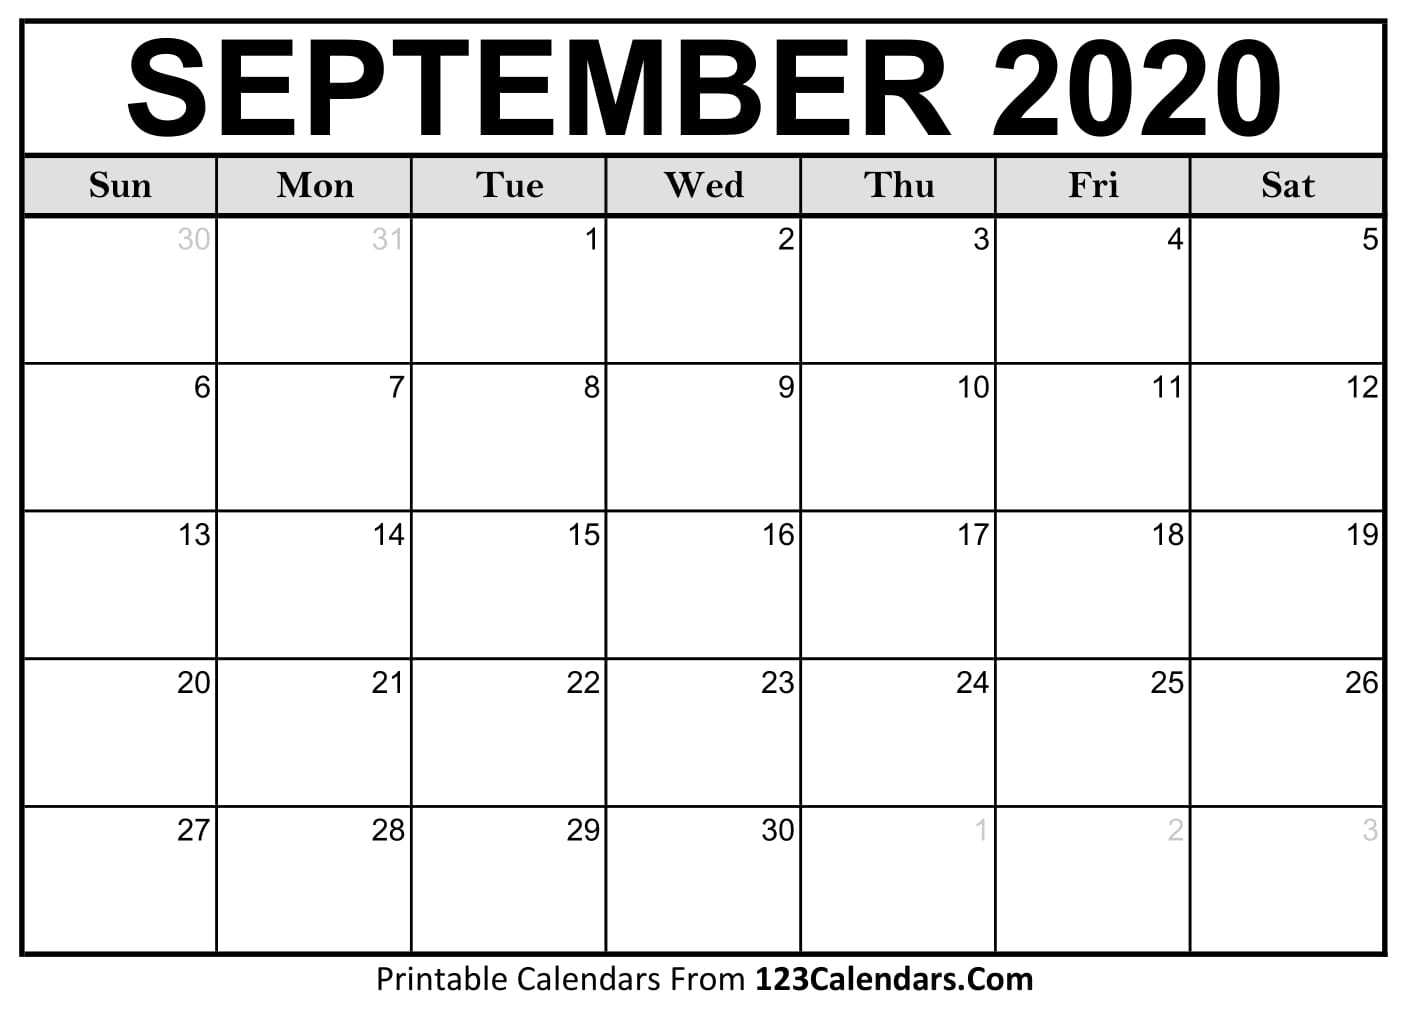 September 2020 Printable Calendar | 123Calendars inside Calendar August And September 2020